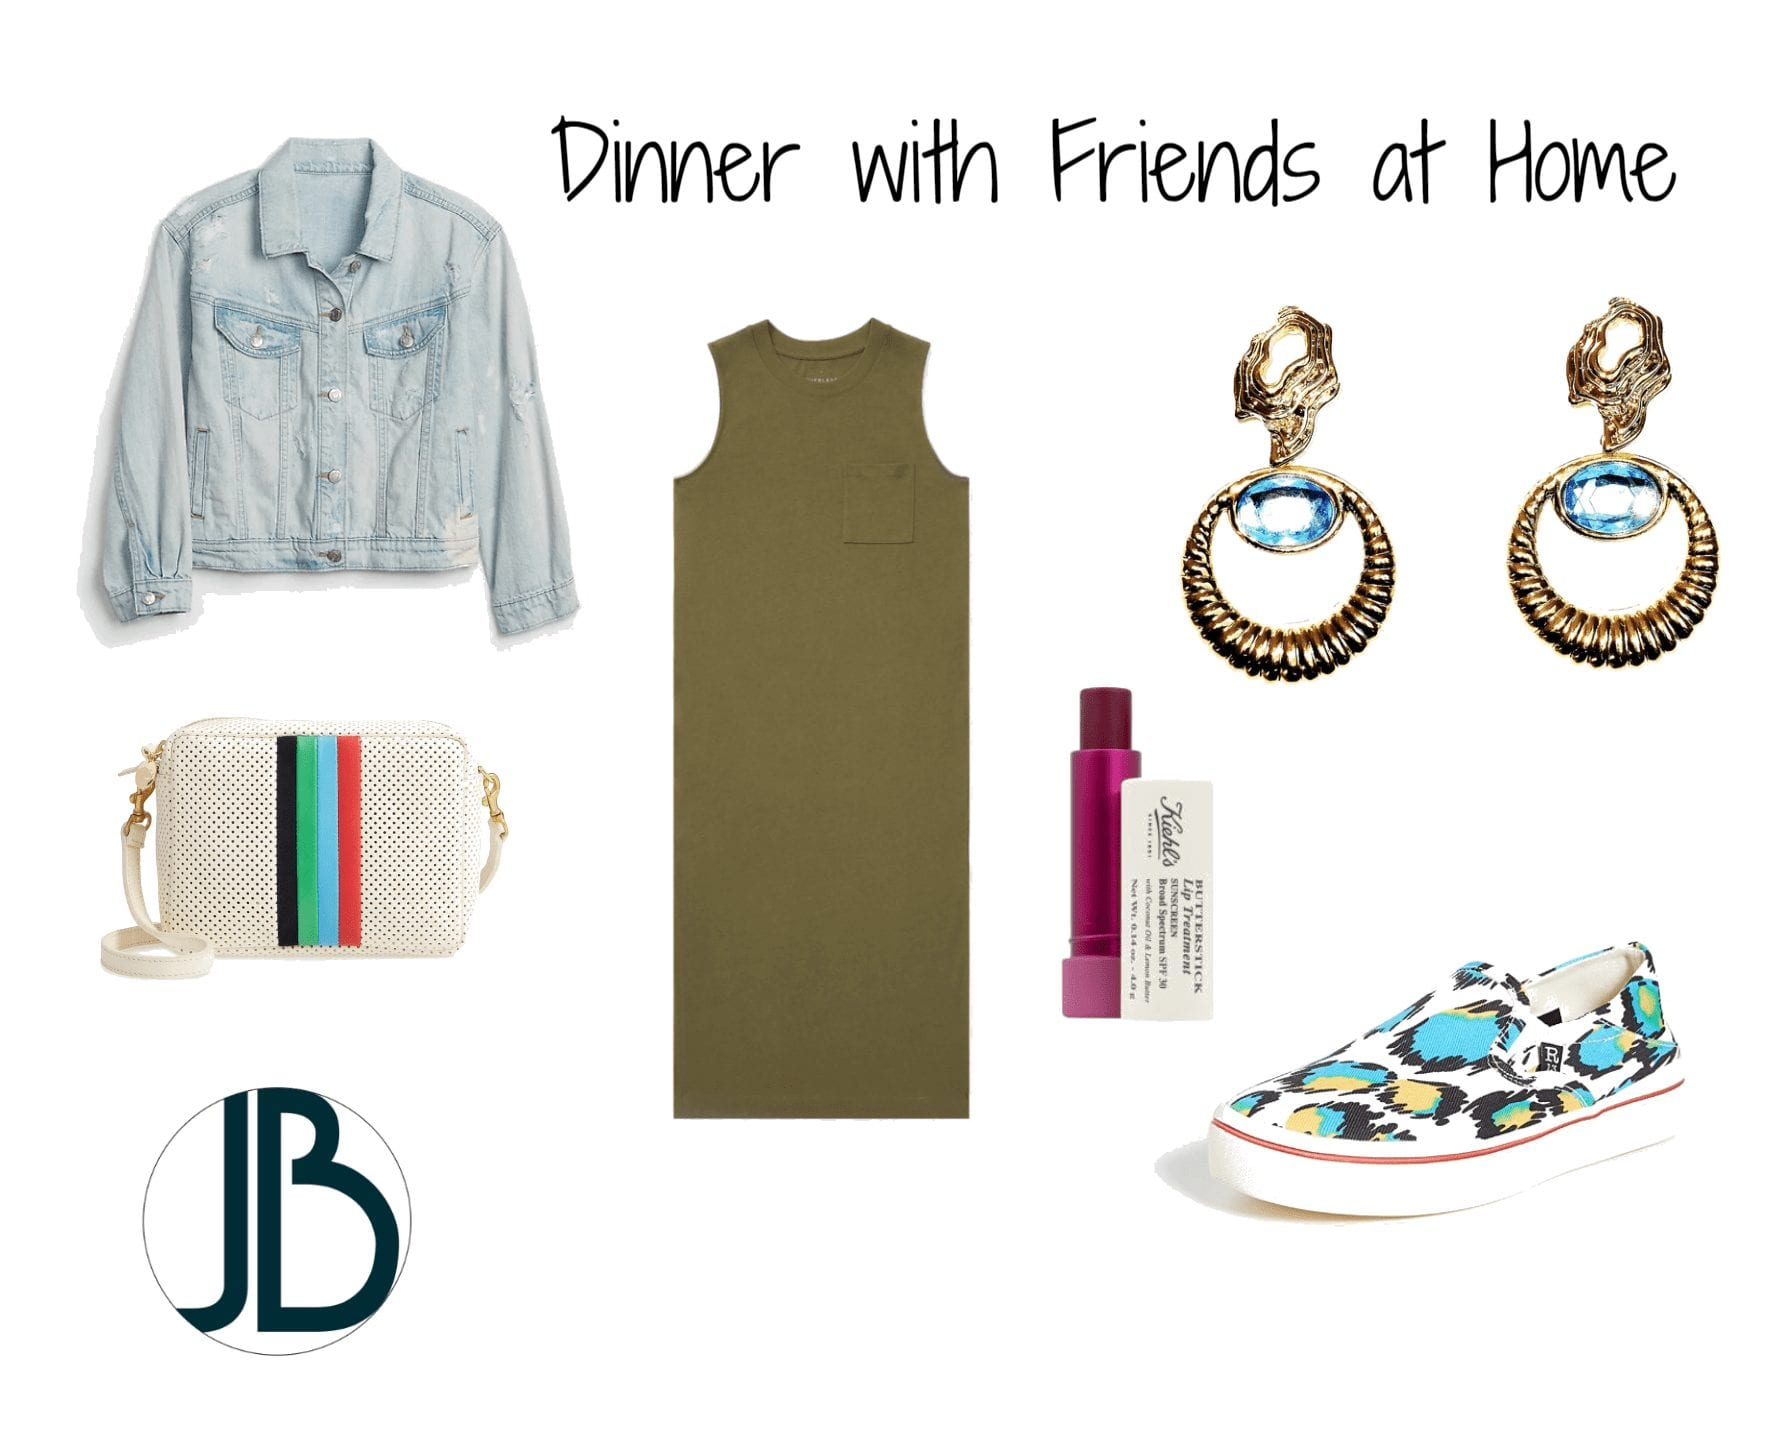 Jami Briggs Fasion Consultant Dinner at Home Outfit